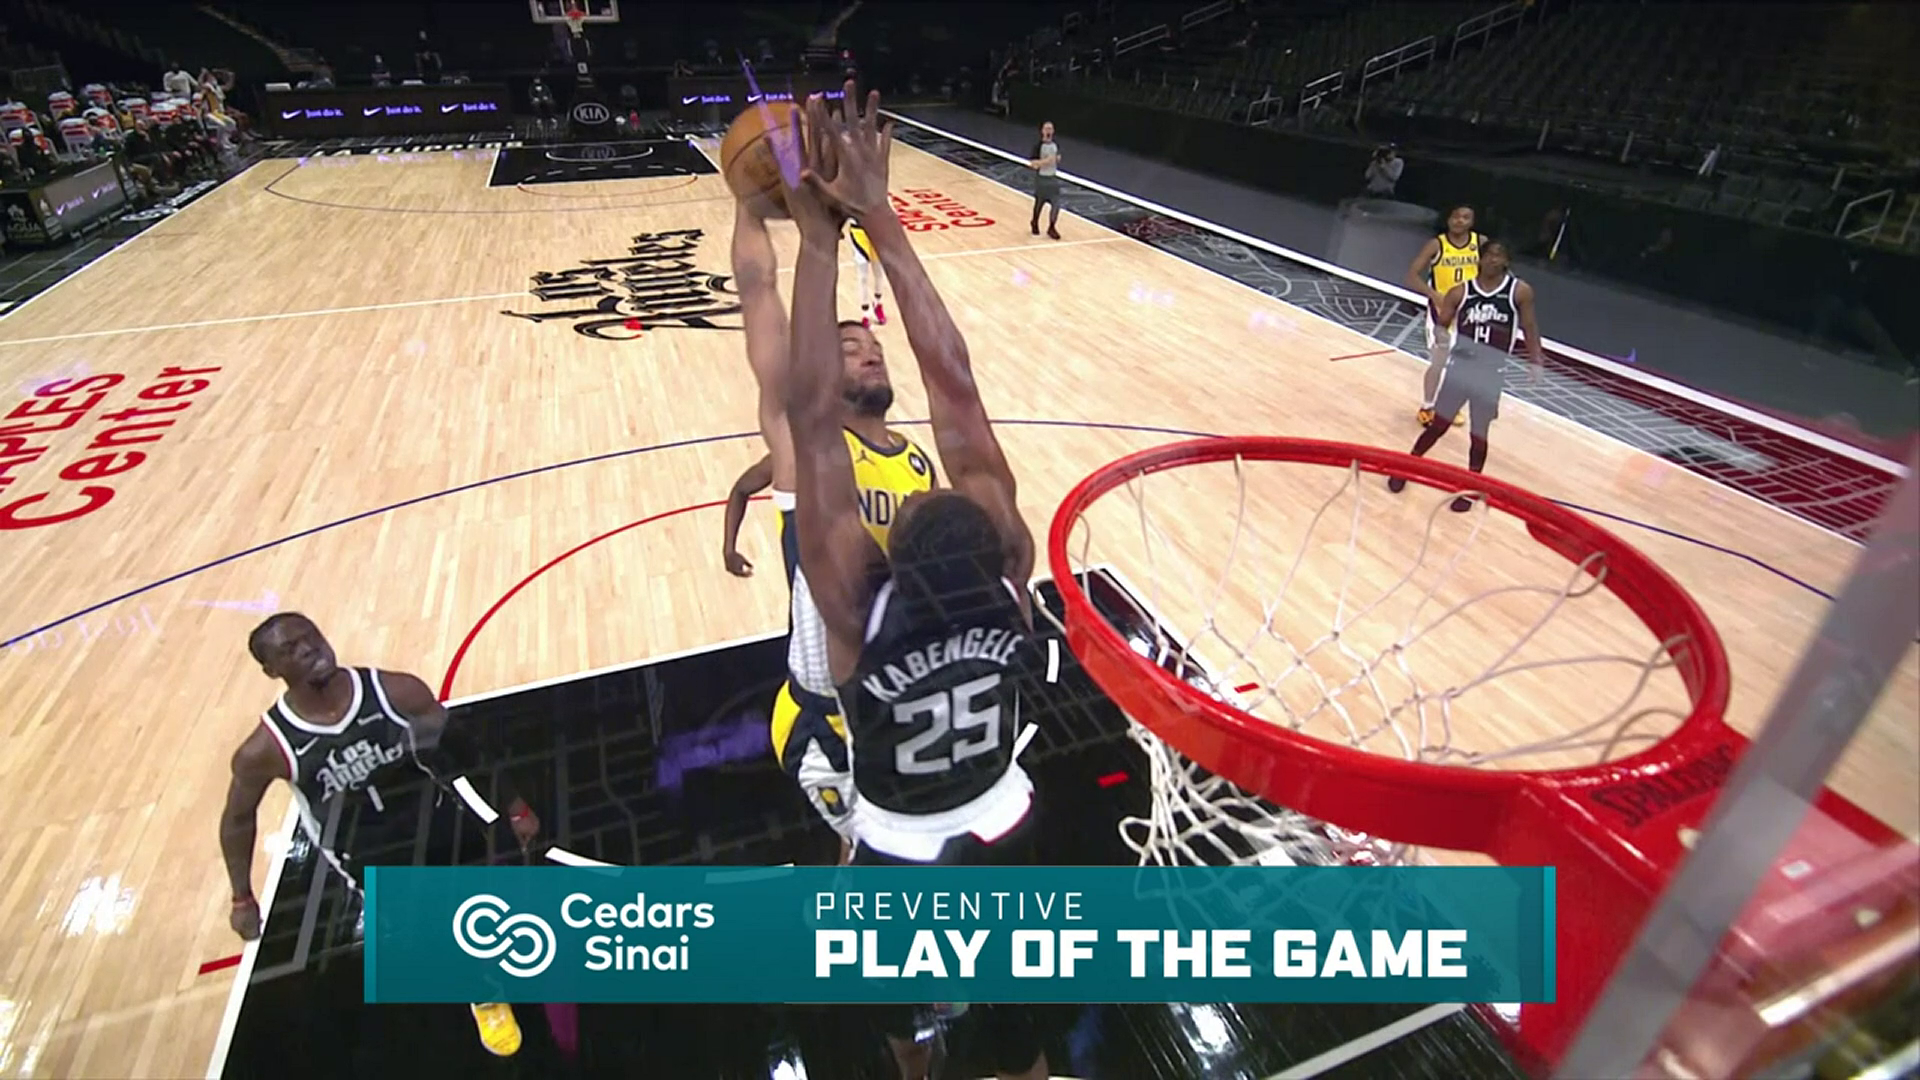 Cedars-Sinai Preventive Play of the Game | Clippers vs Pacers (1.17.21)